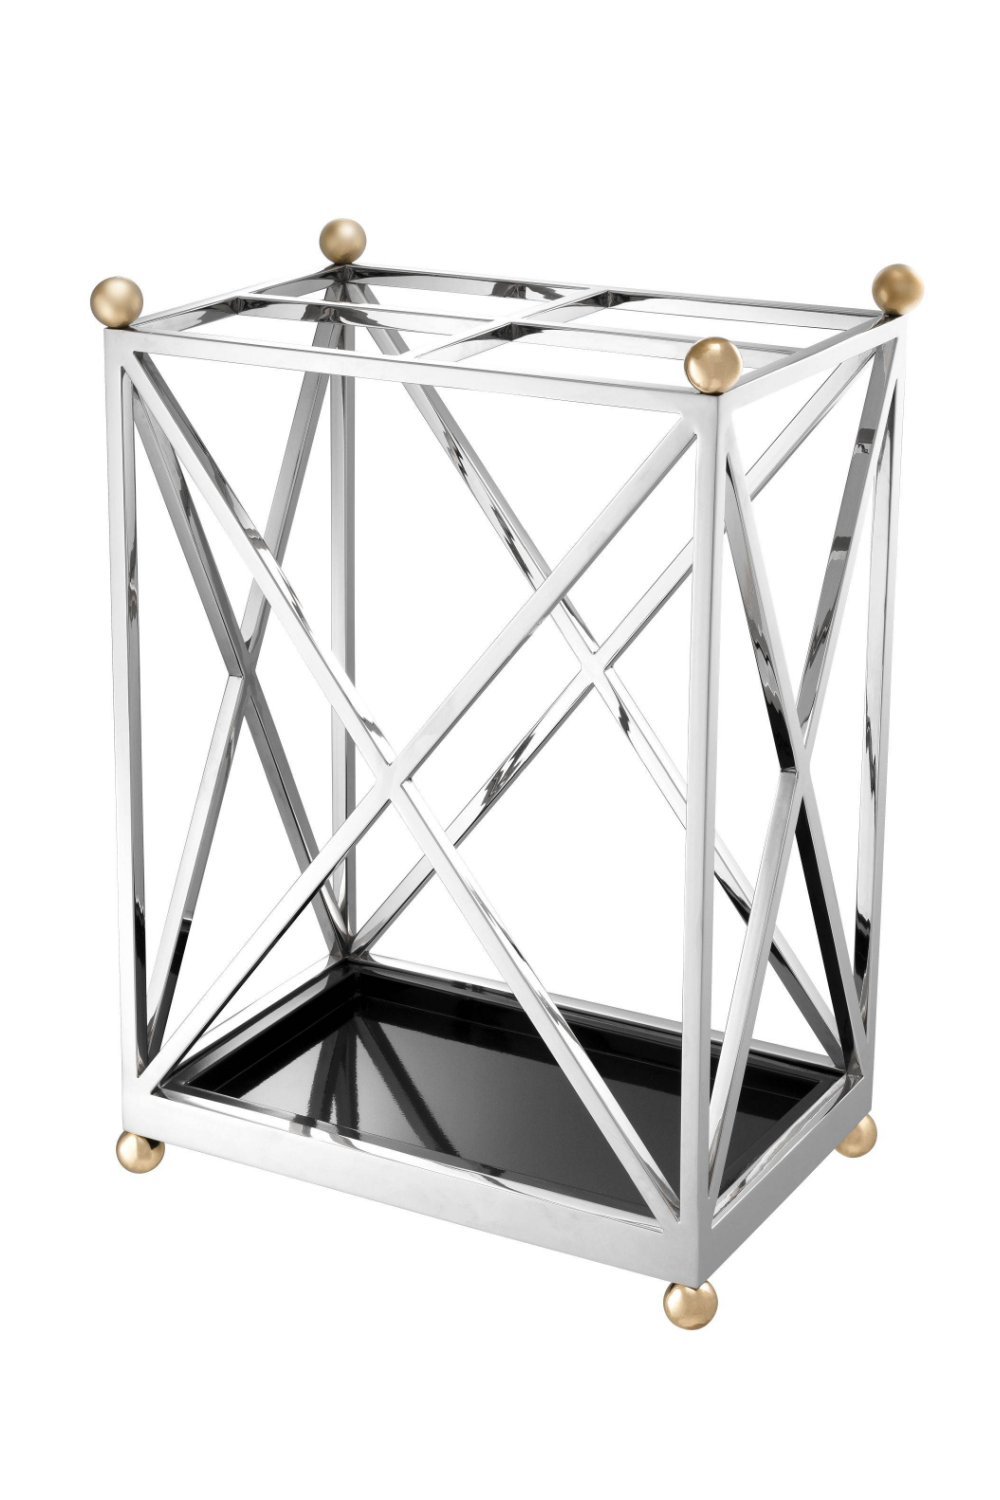 Silver Geometric Umbrella Stand | Eichholtz Quorum